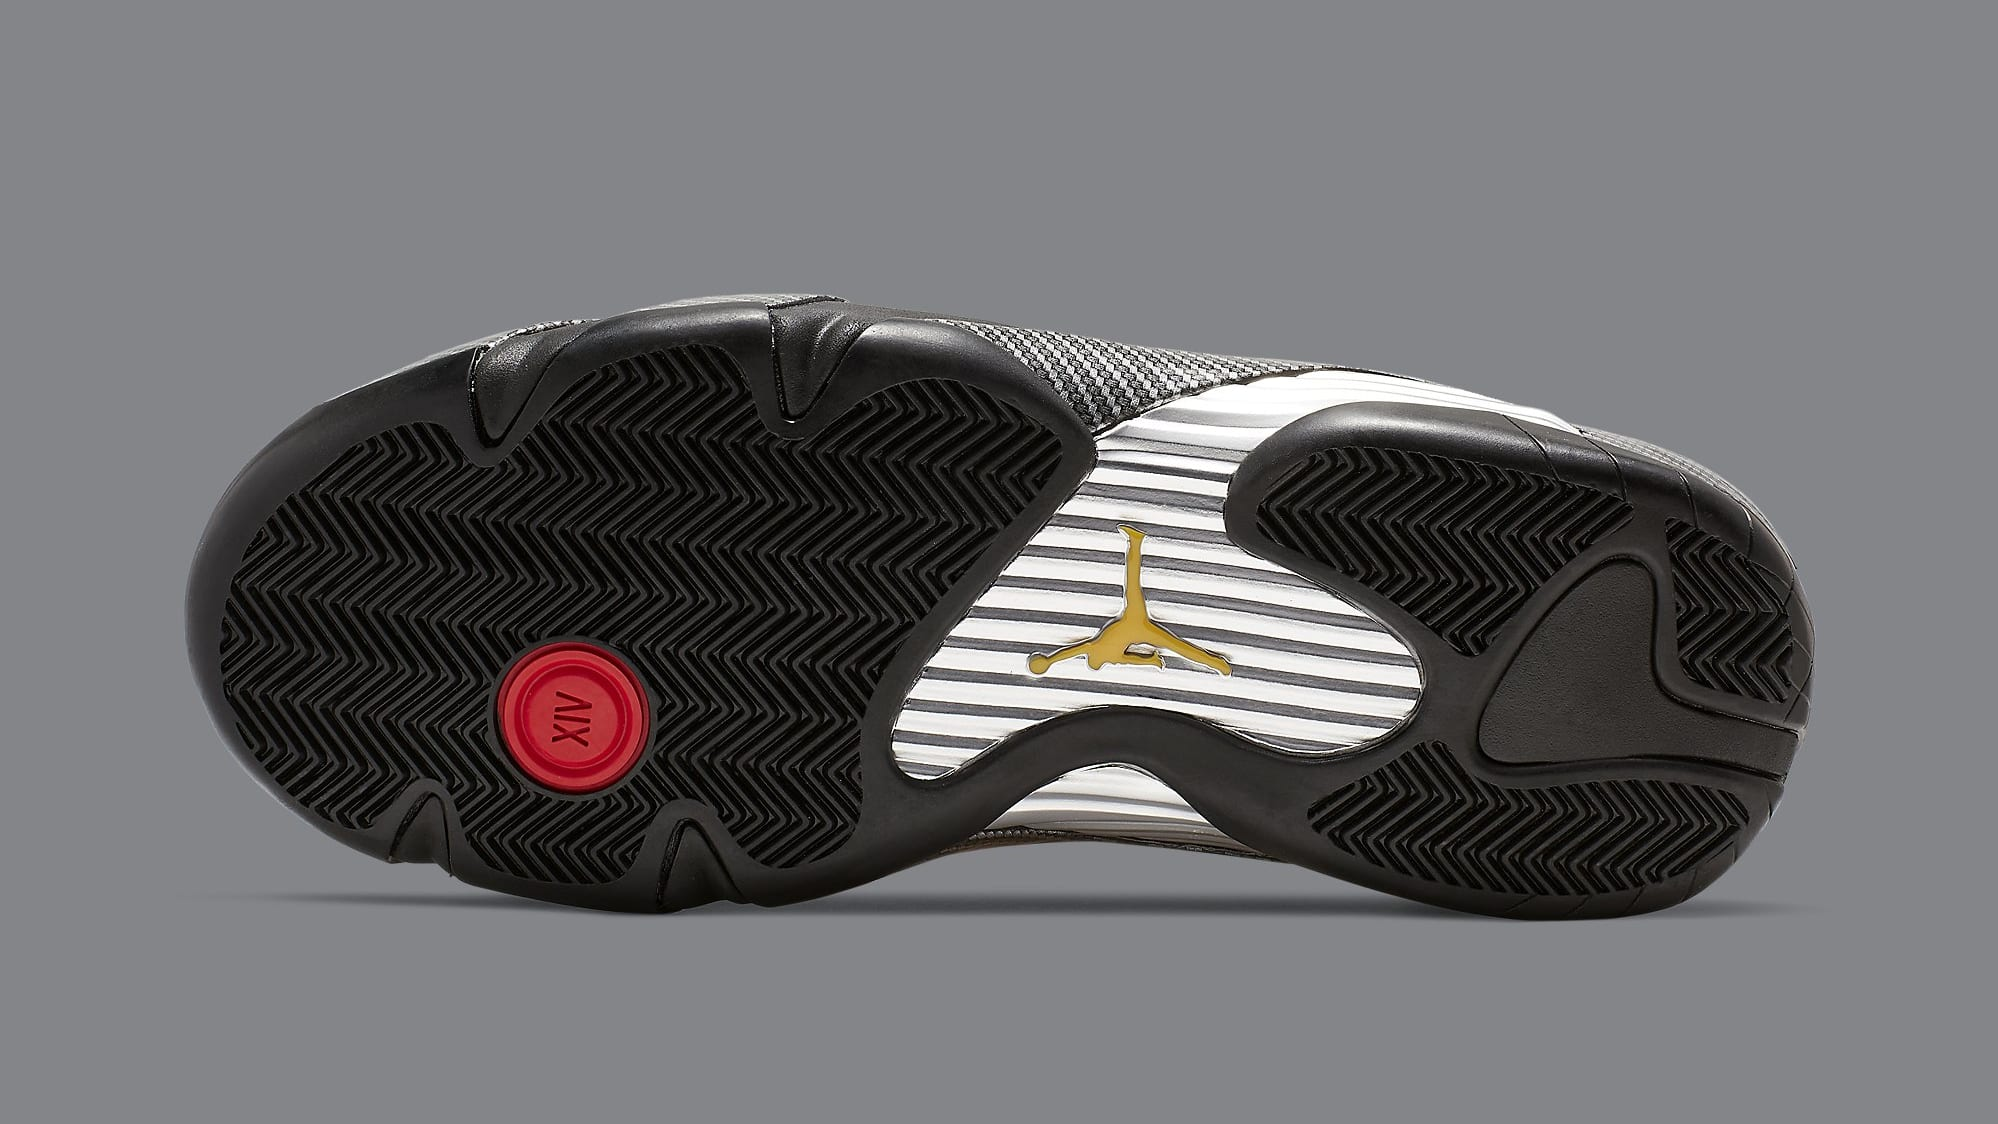 Air Jordan 14 XIV Yellow Ferrari Release Date BQ3685-706 Sole